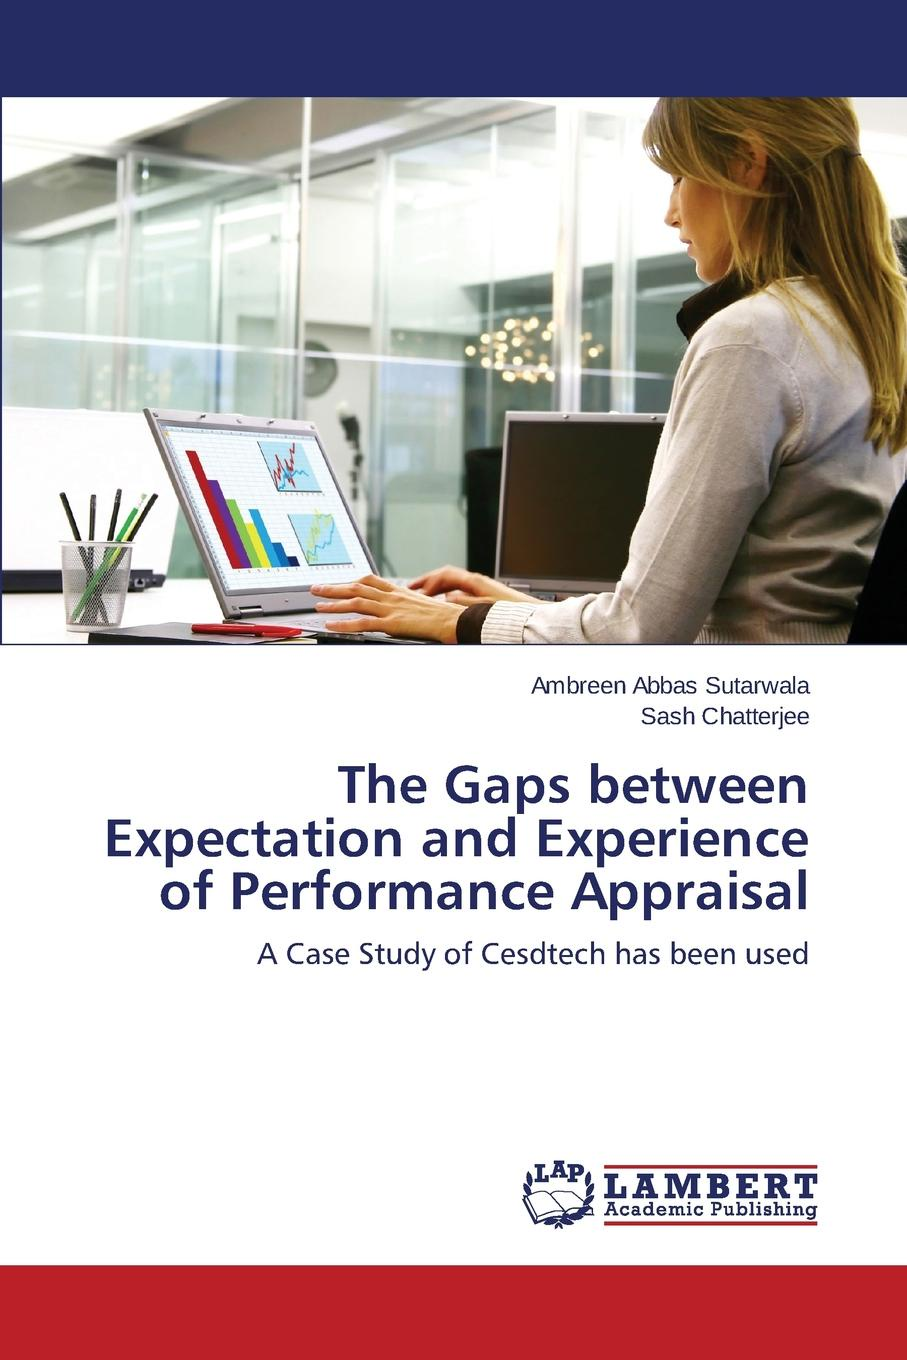 Sutarwala Ambreen Abbas, Chatterjee Sash The Gaps between Expectation and Experience of Performance Appraisal girma shimelis muluneh teachers performance appraisal system